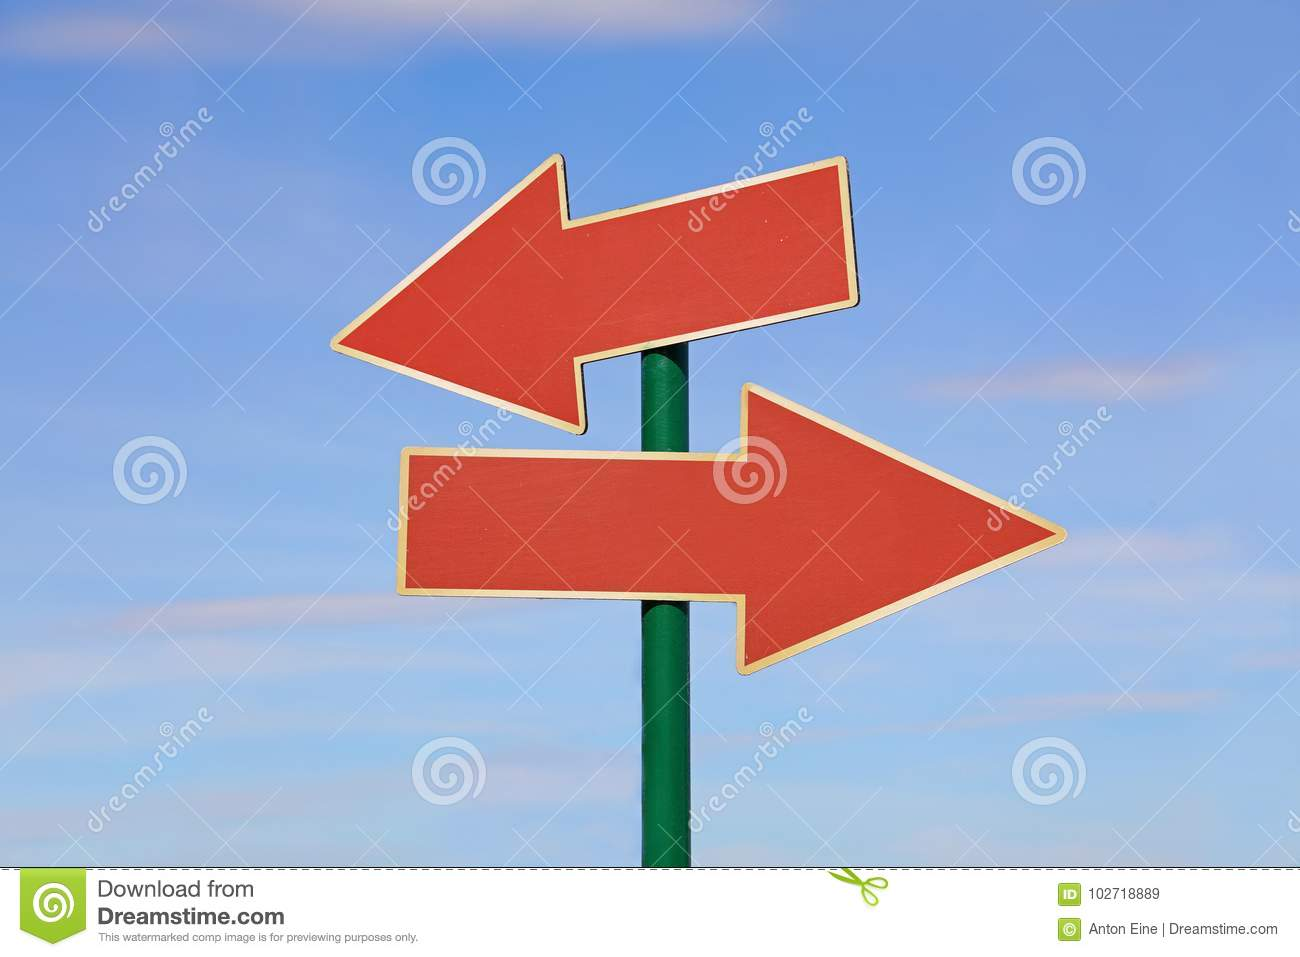 Road sign with two red arrows over blue sky